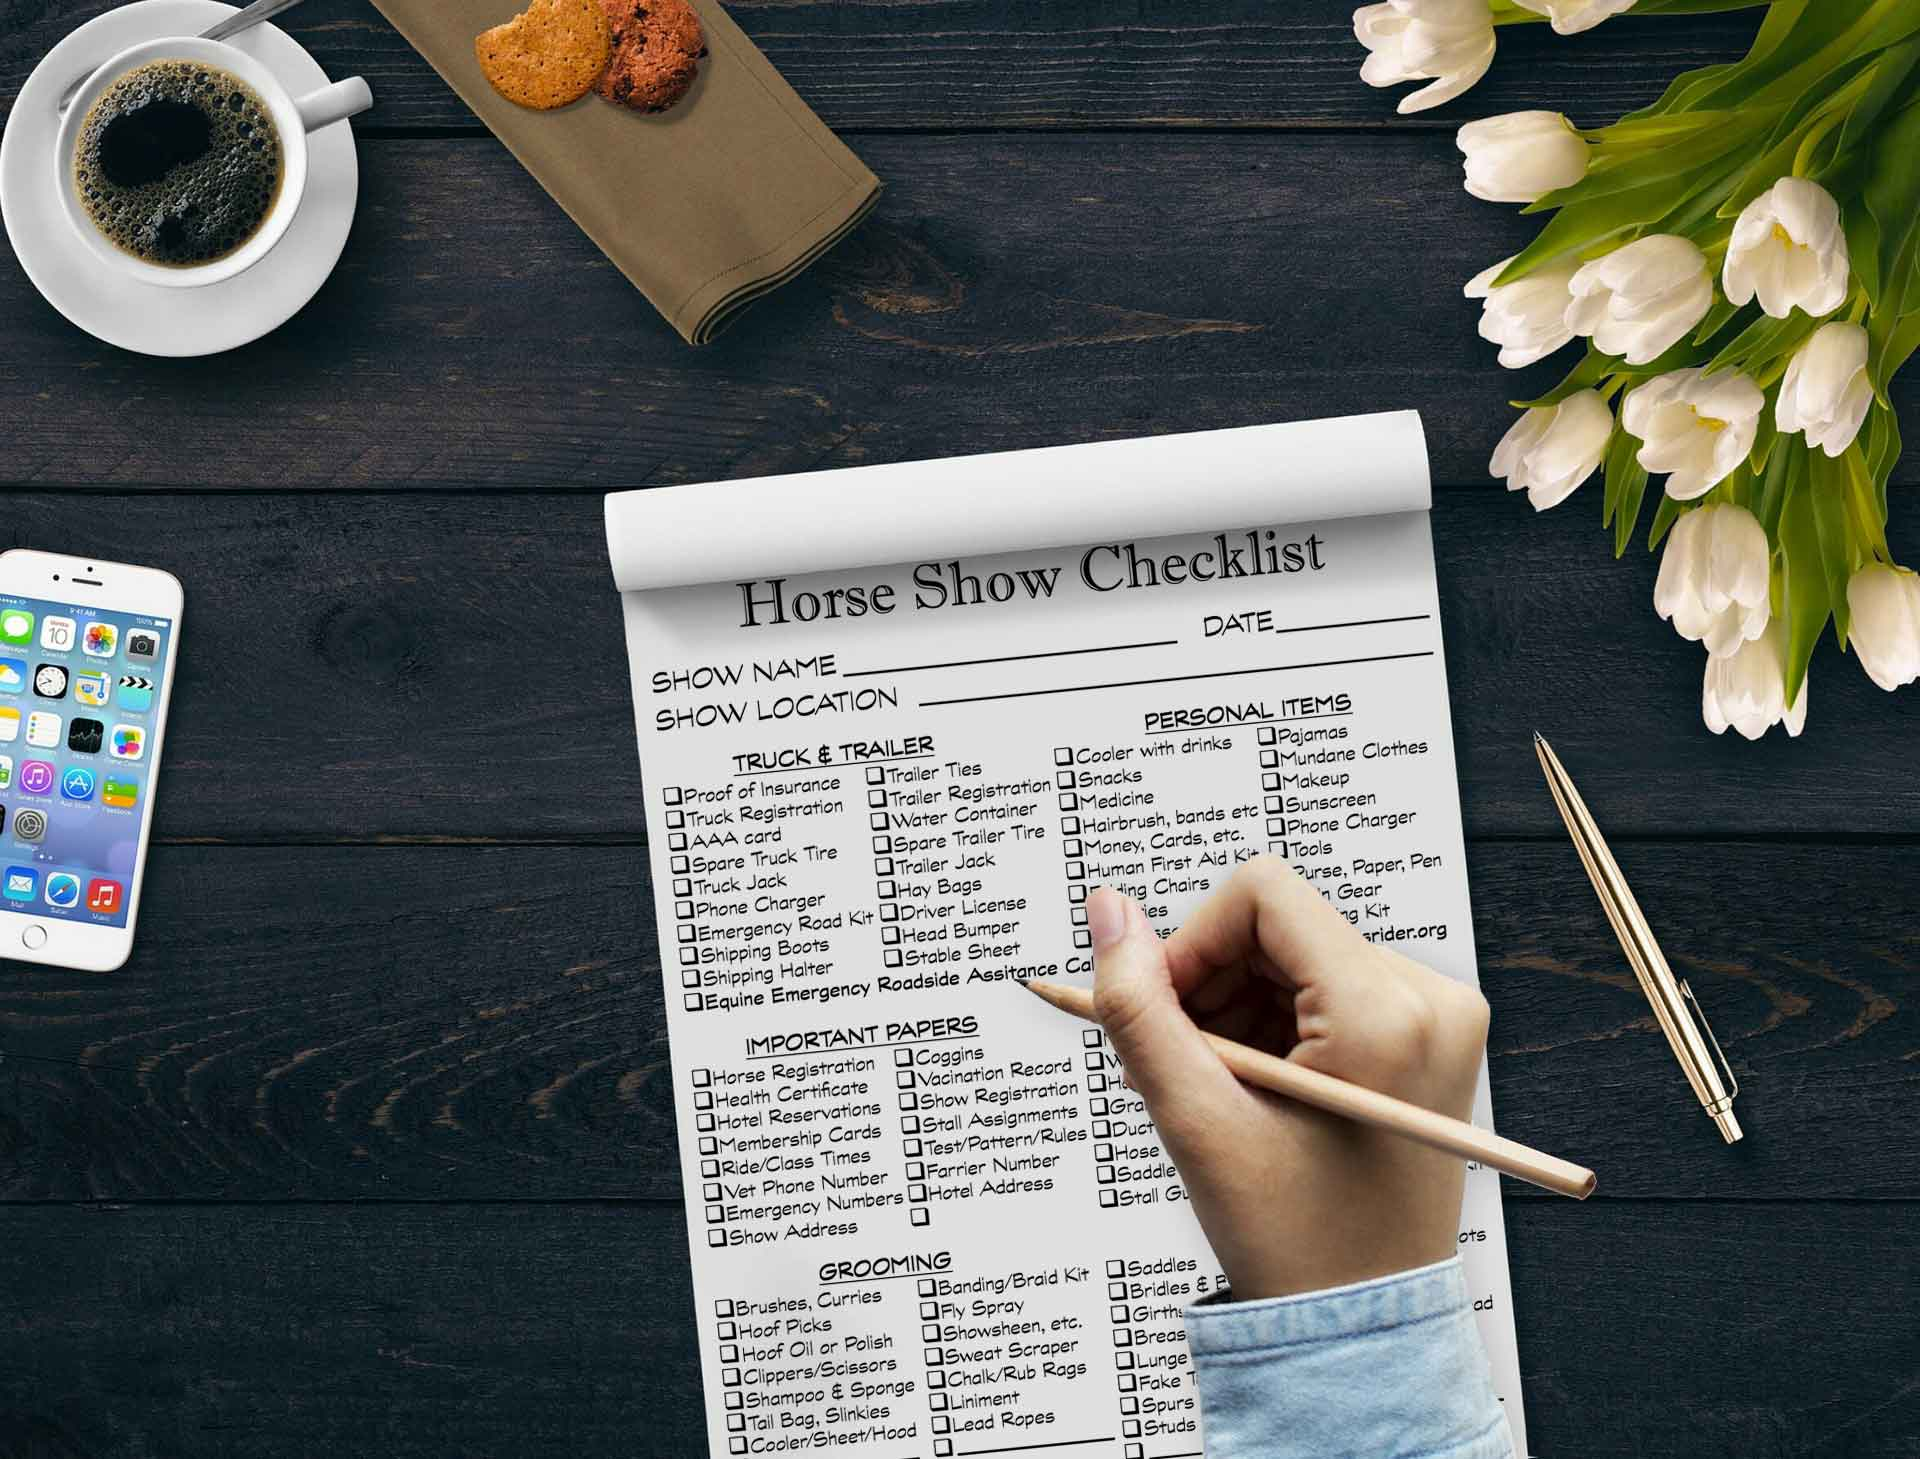 Horse Show Checklist Notepad, Detailed Horse Show List Scratchpad